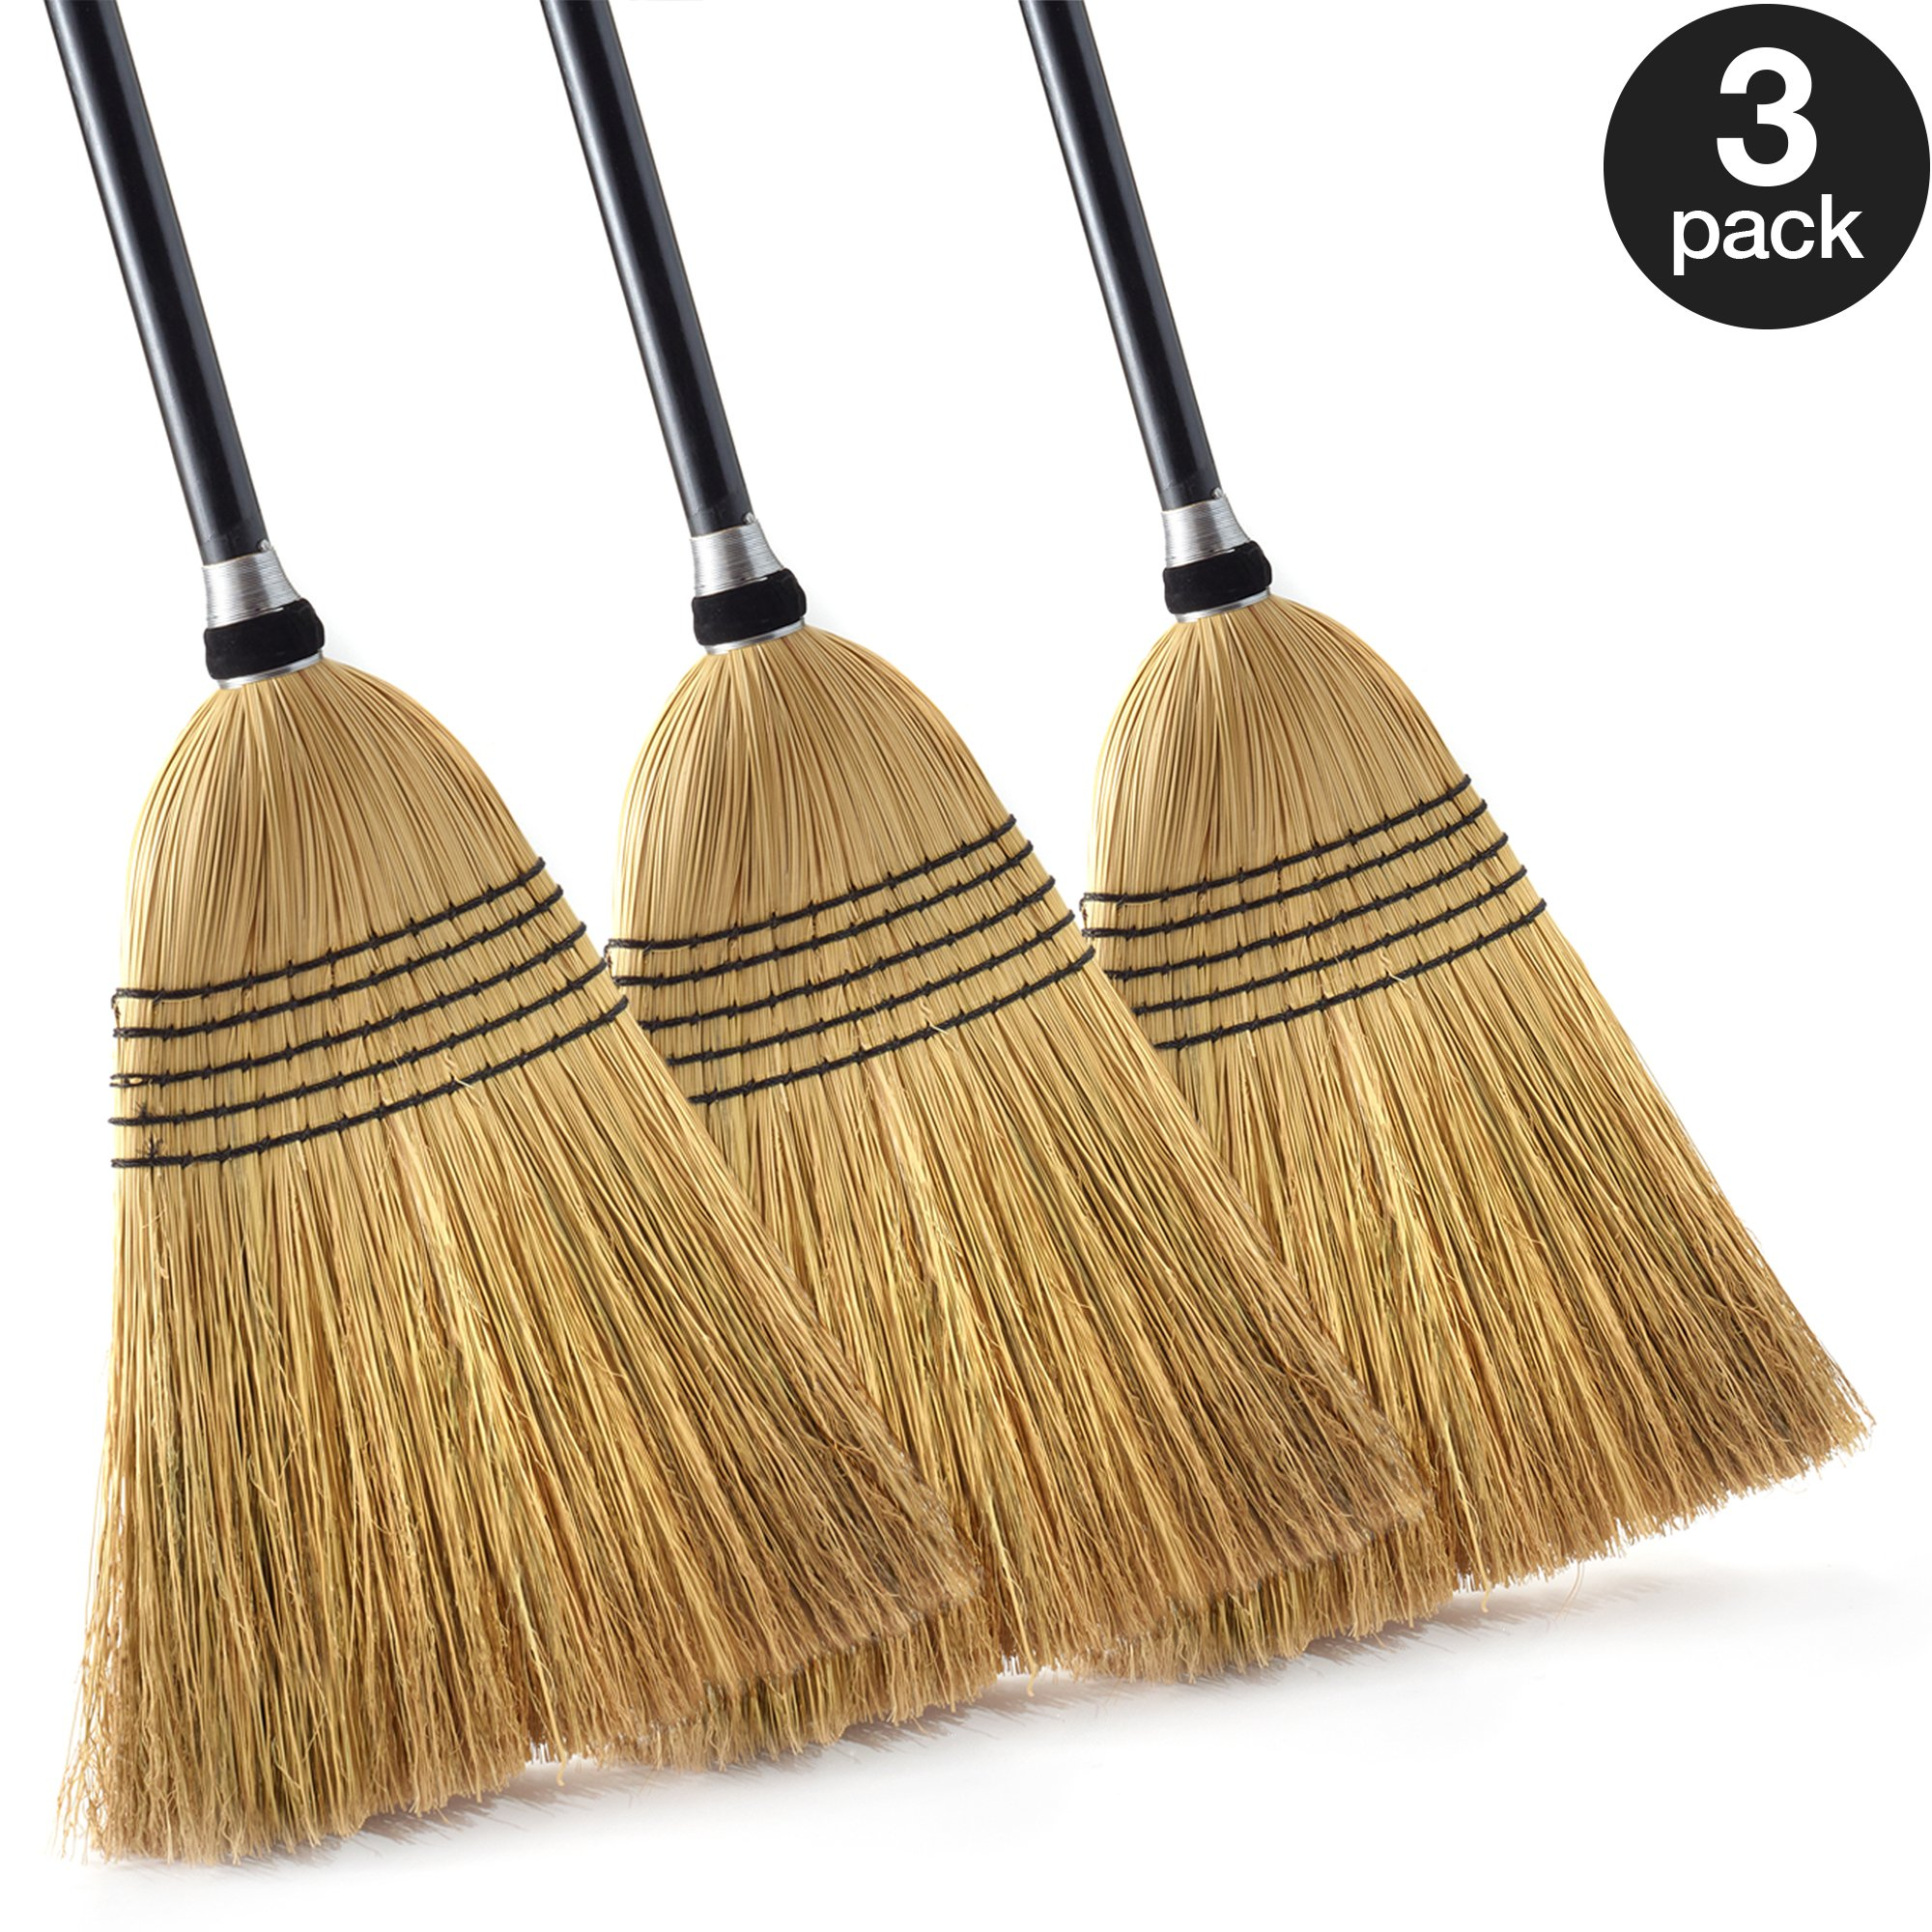 O-Cedar Heavy Duty Commercial 100% Corn Broom with Solid Wood Handle (Pack - 3)